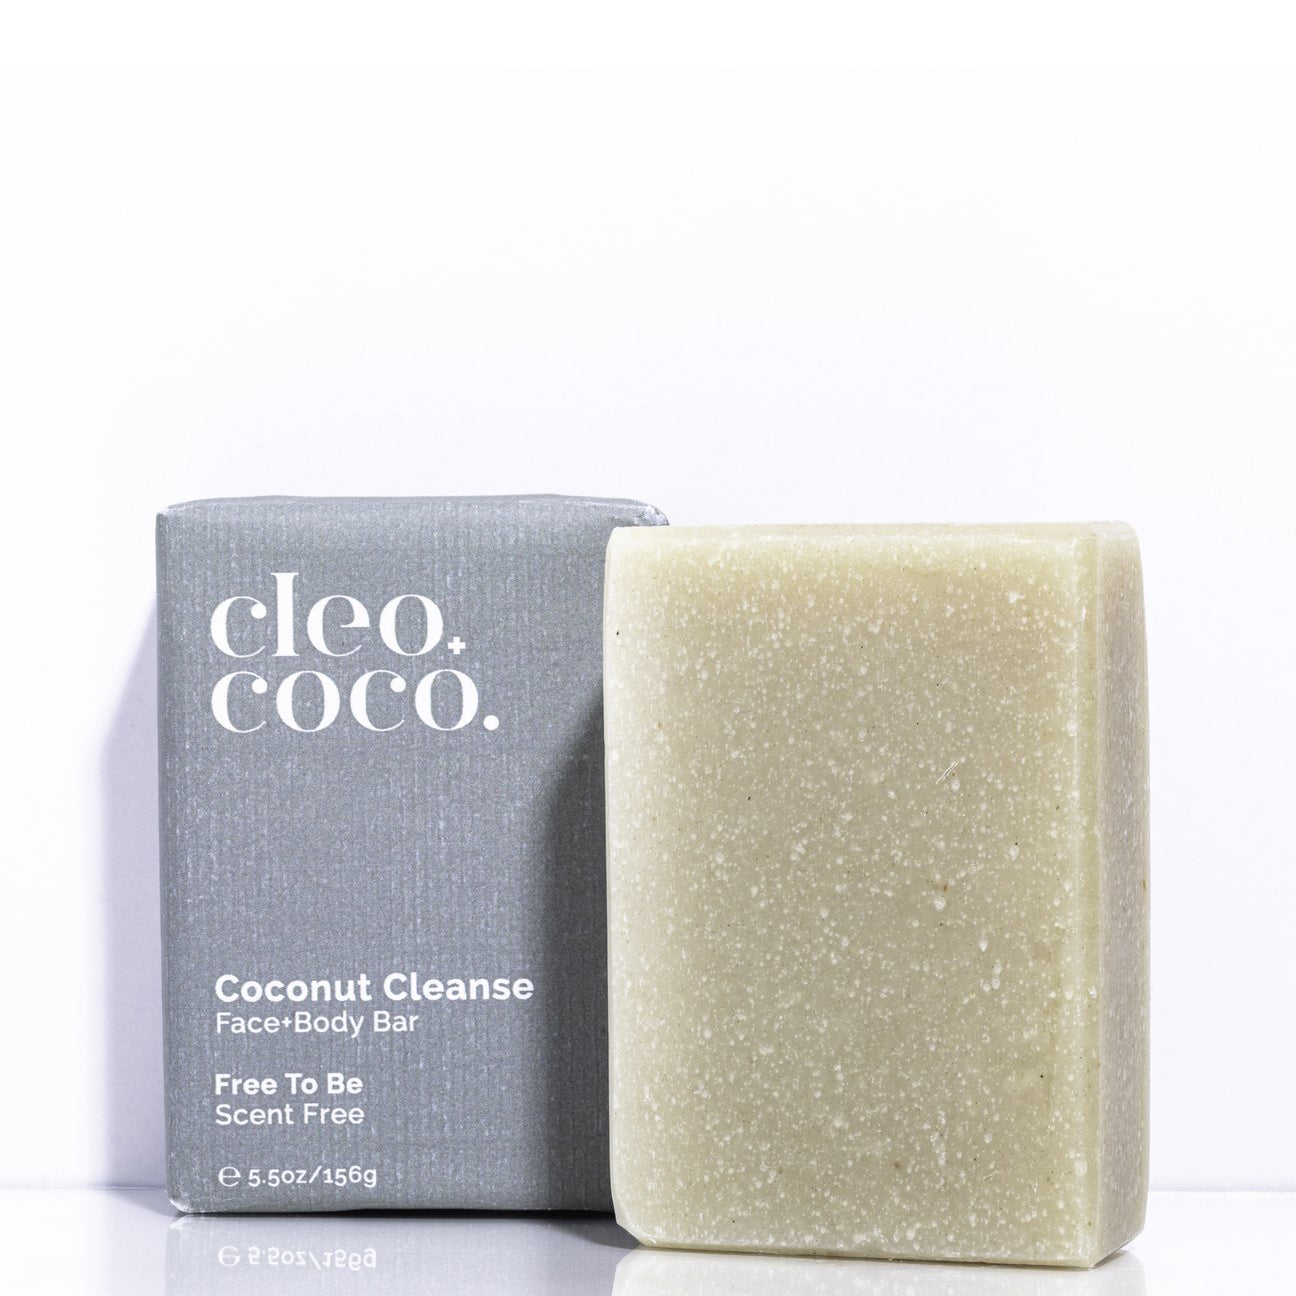 Coconut Cleanse Face + Body Bar